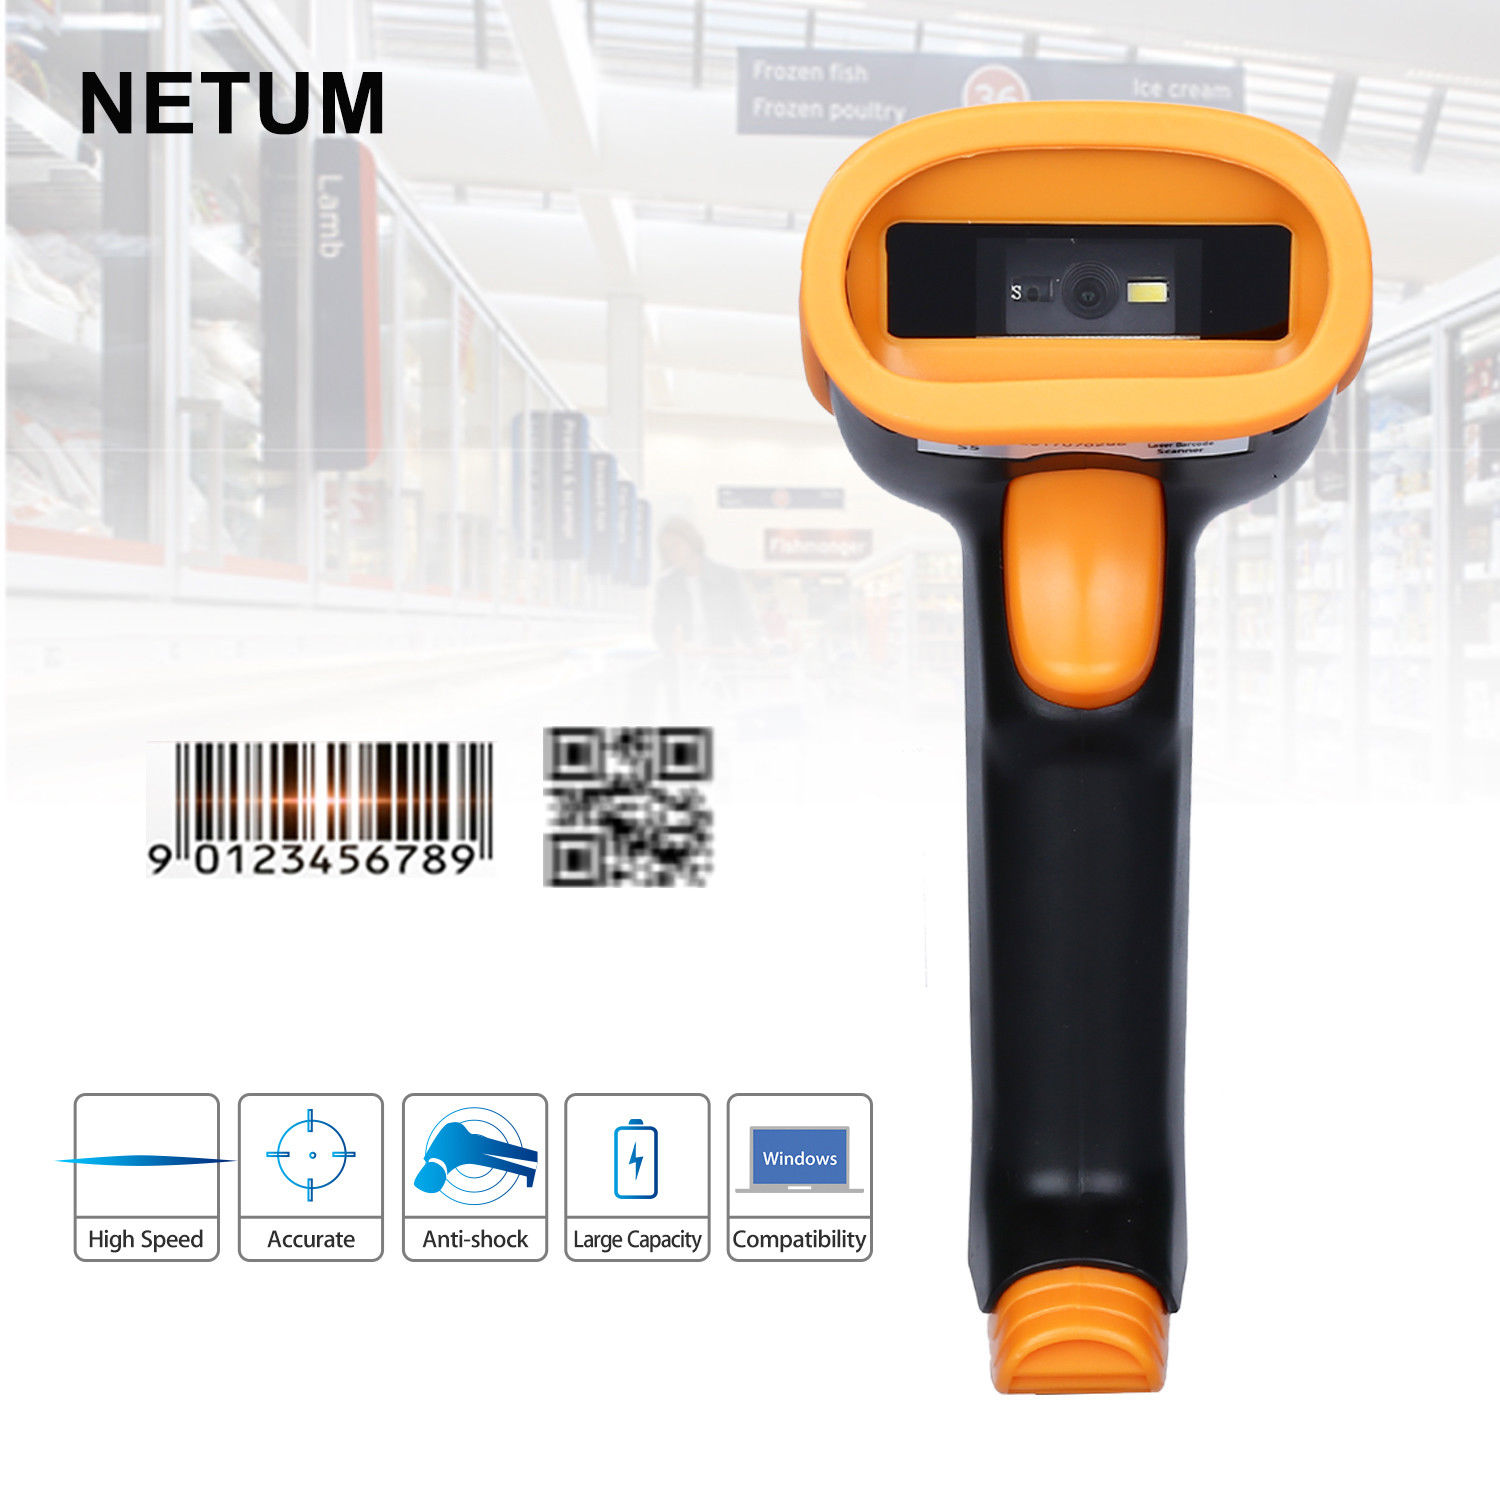 NETUM NT-S5 Handheld 2D Barcode Scanner QR Bar Code Reader USB Scaning for Mobile Payment Computer Screen supermarket handheld 2dcode scanner bar codereader qr code reader usb bar code scanner mobile payment